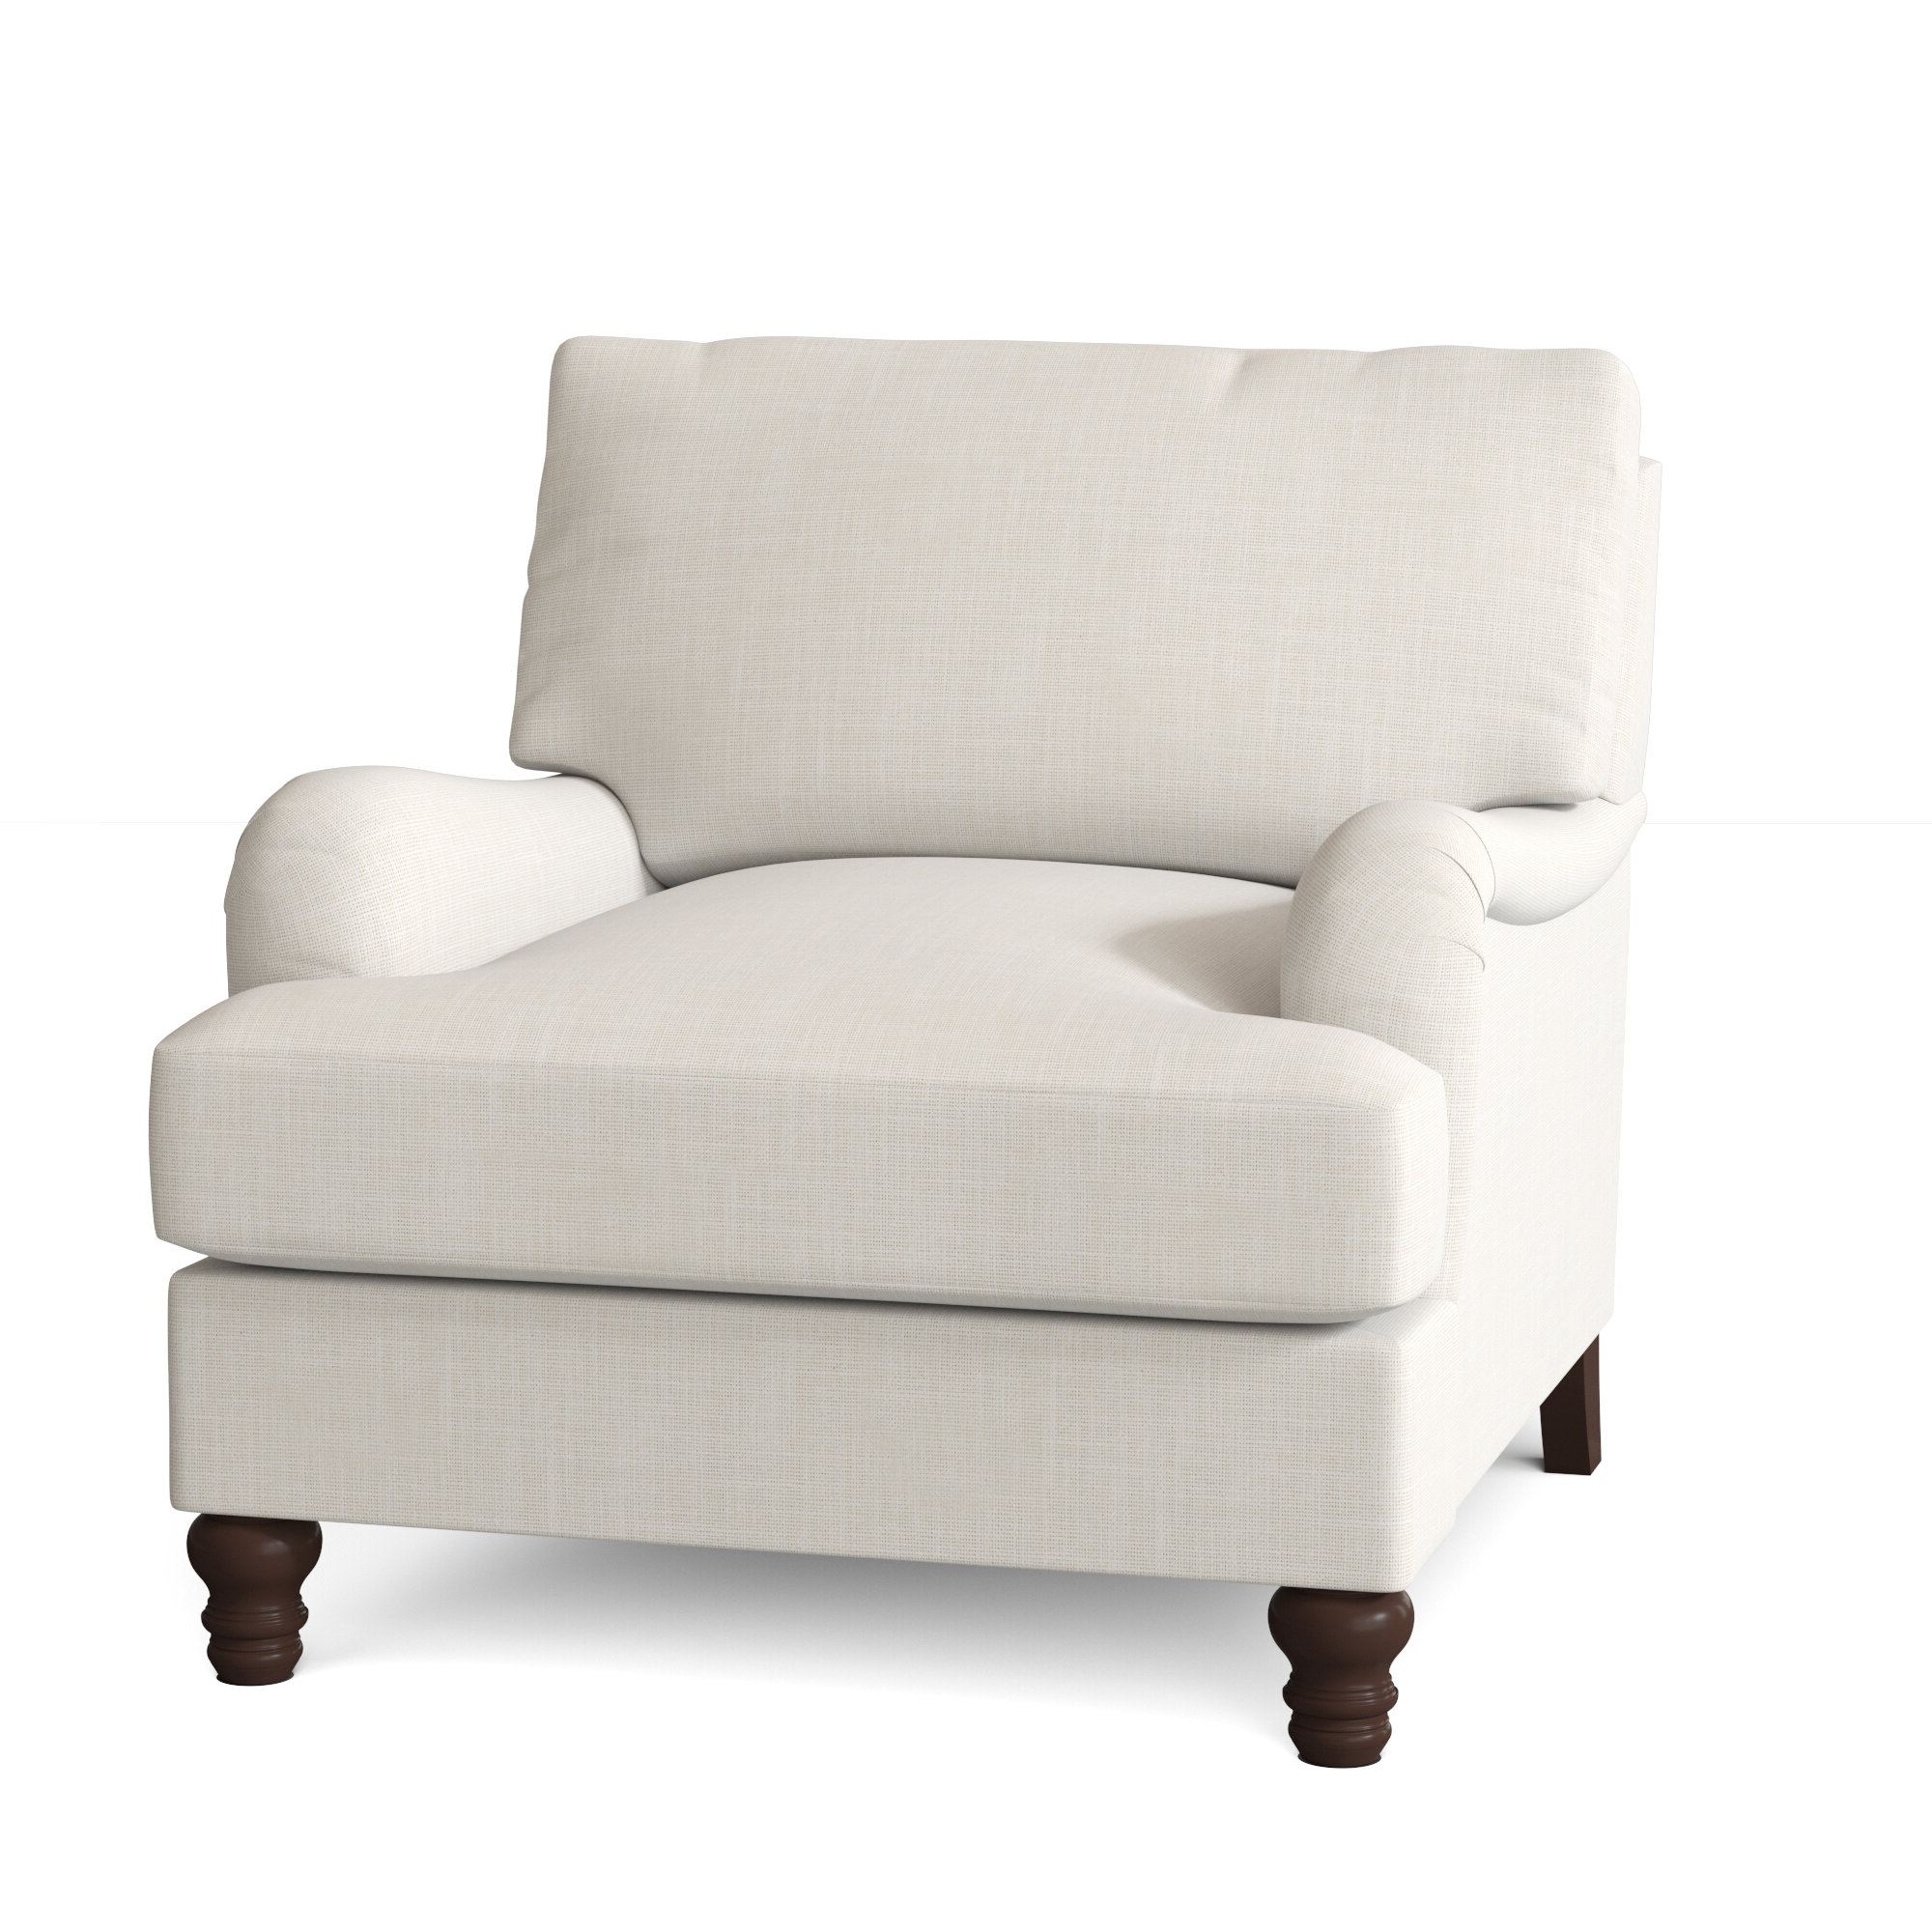 """Ronald Polyester Blend Armchairs Intended For Favorite Montgomery 36"""" W Polyester Blend Down Cushion Armchair (View 13 of 20)"""